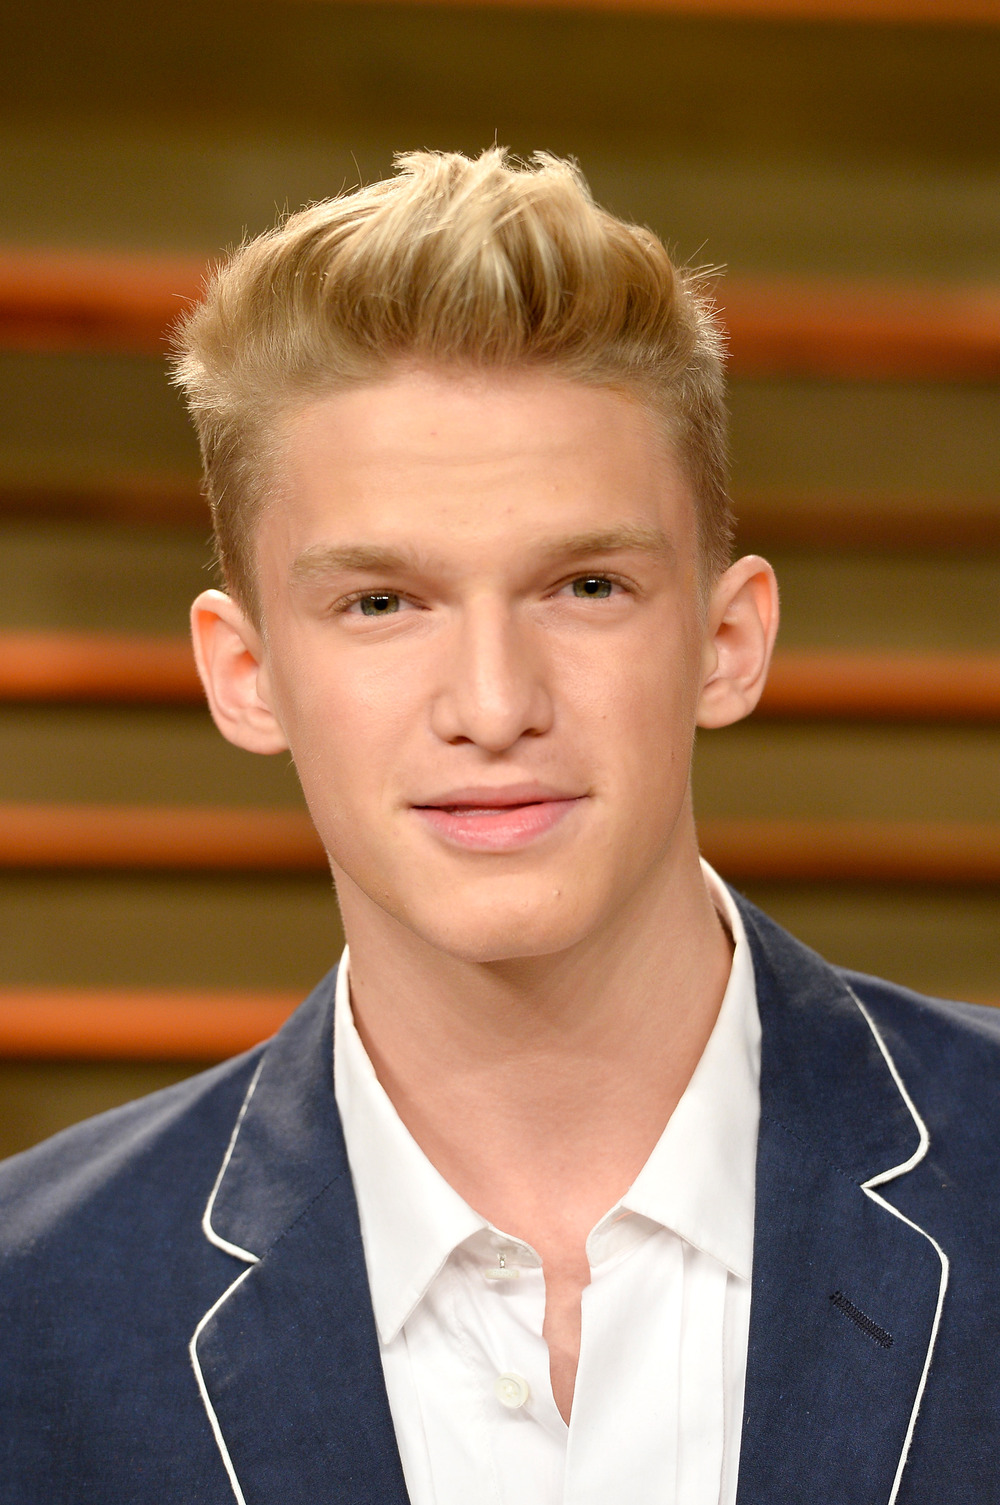 Cody Simpson's Bare Butt Photo Deleted From Social Media — But Not By Him (VIDEO)